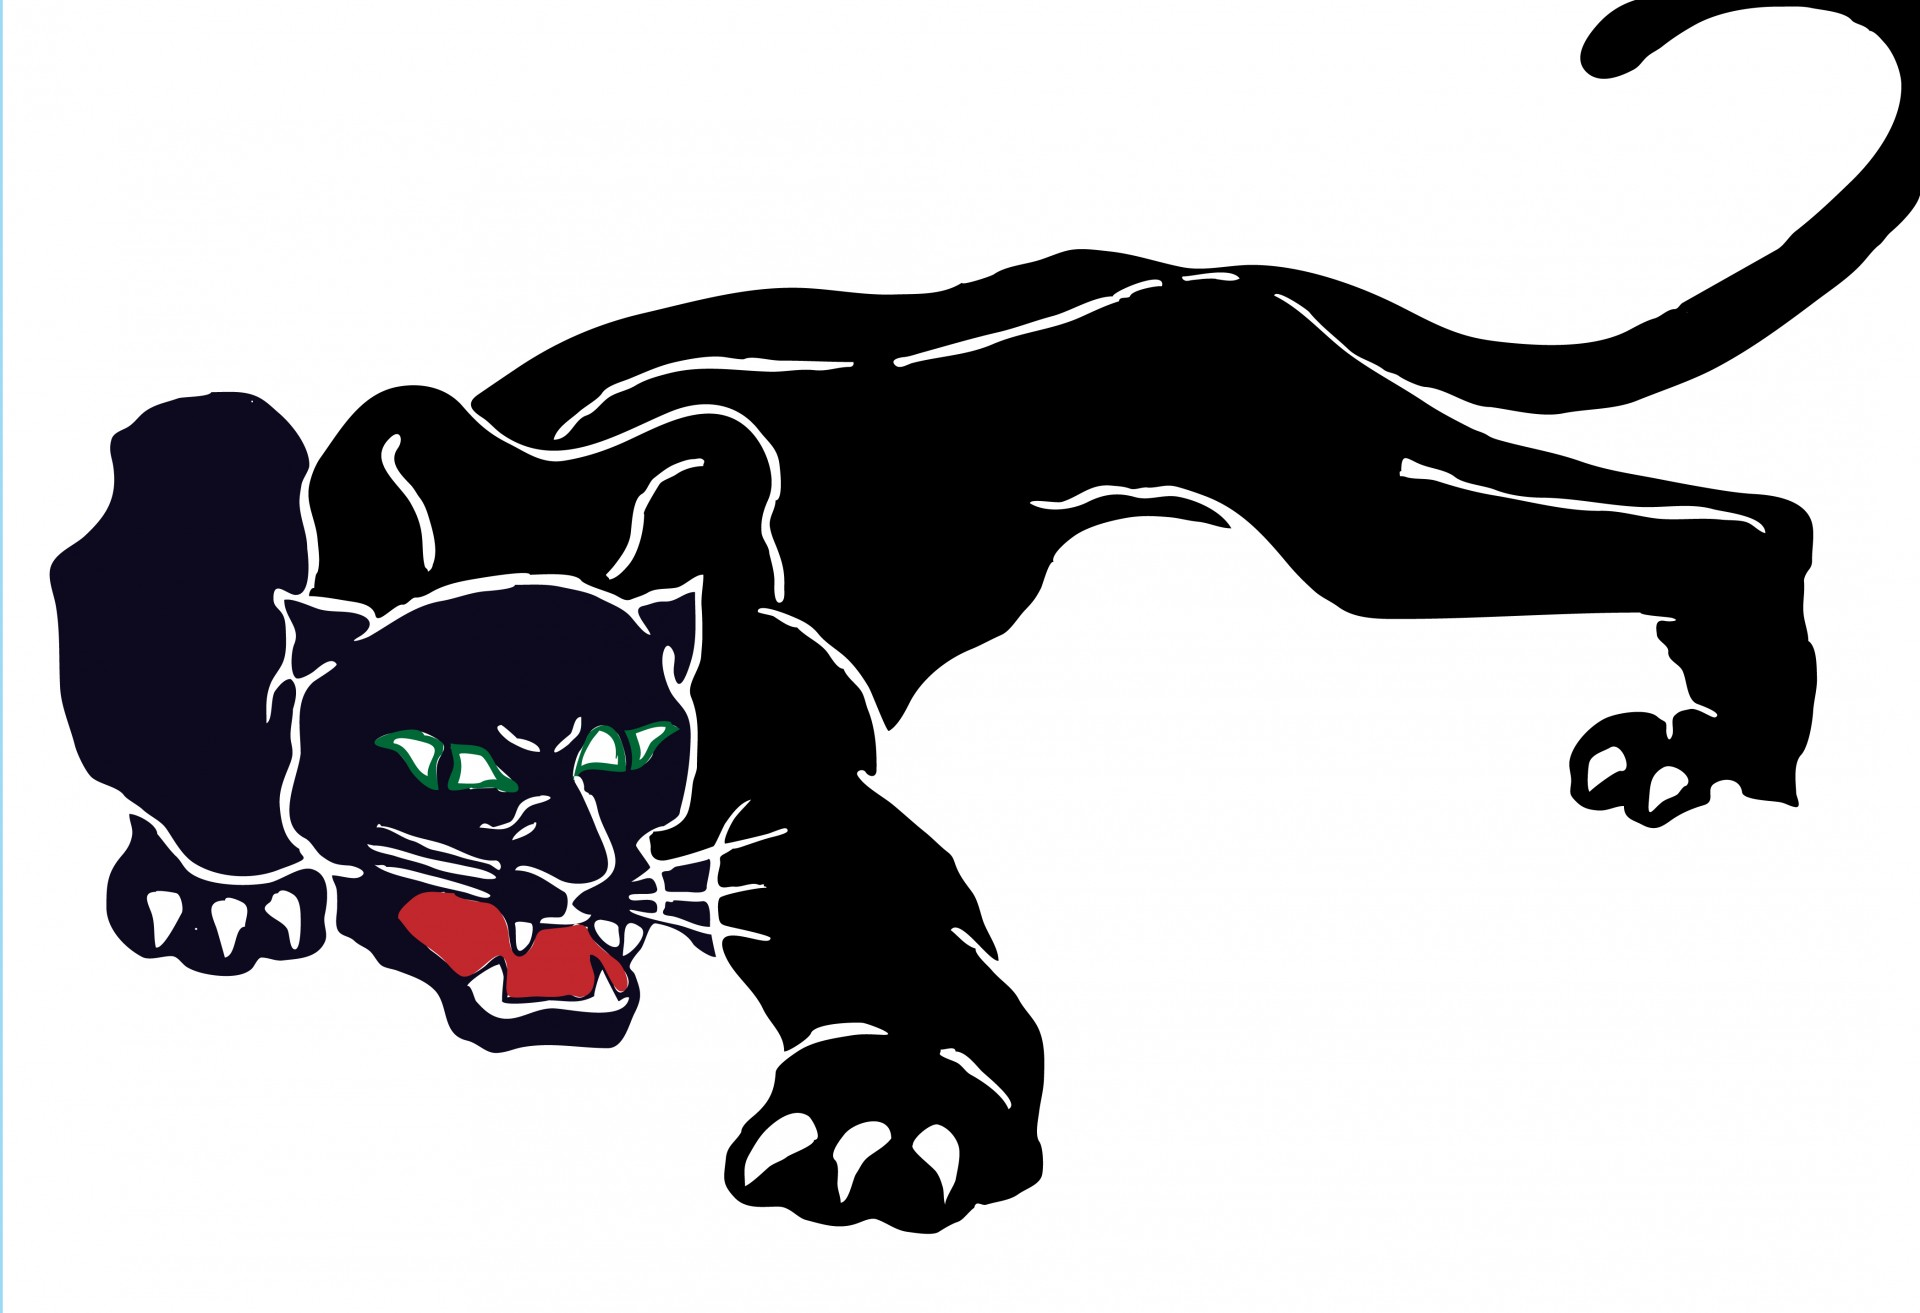 Black Panther clipart #8, Download drawings